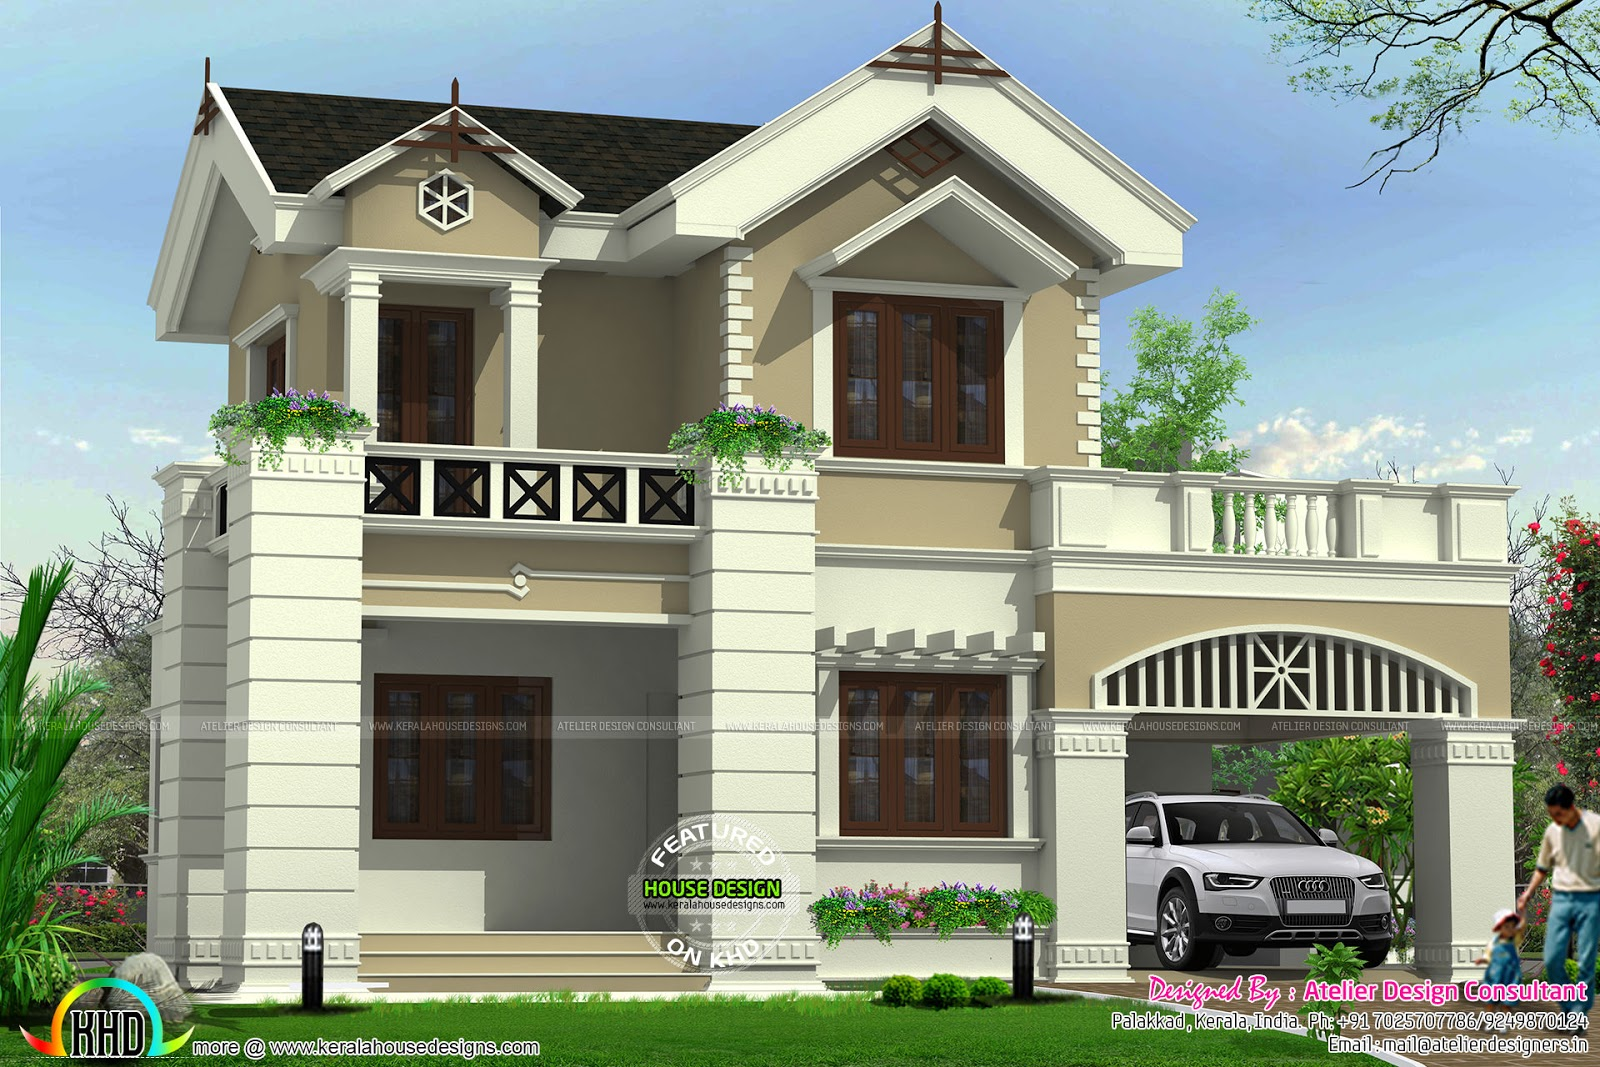 Cute victorian model home kerala home design and floor plans for Home and style